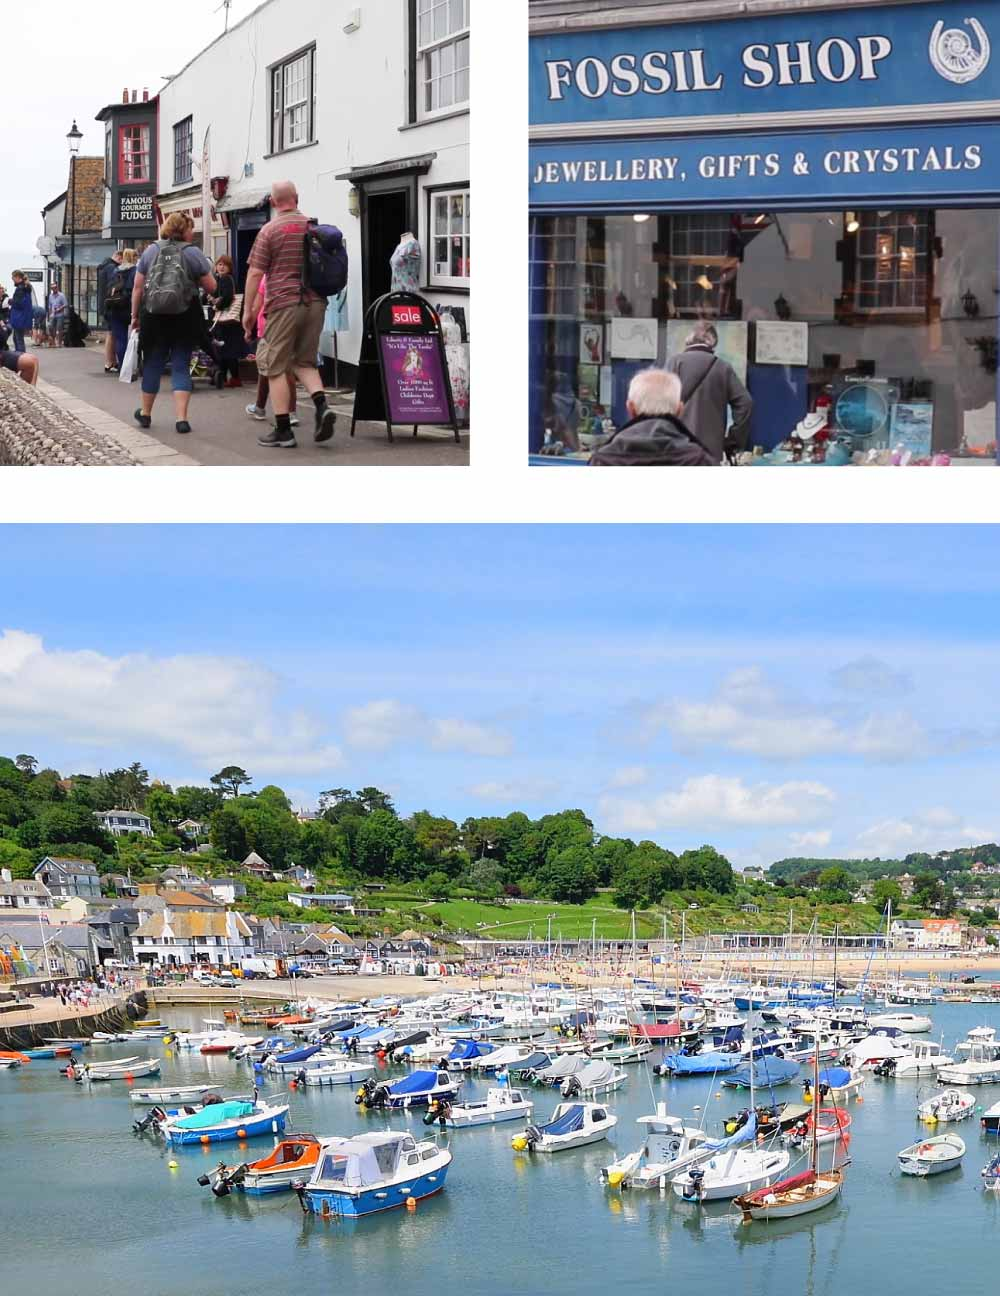 Lyme Regis collage showing busy street, fossil shop and harbour